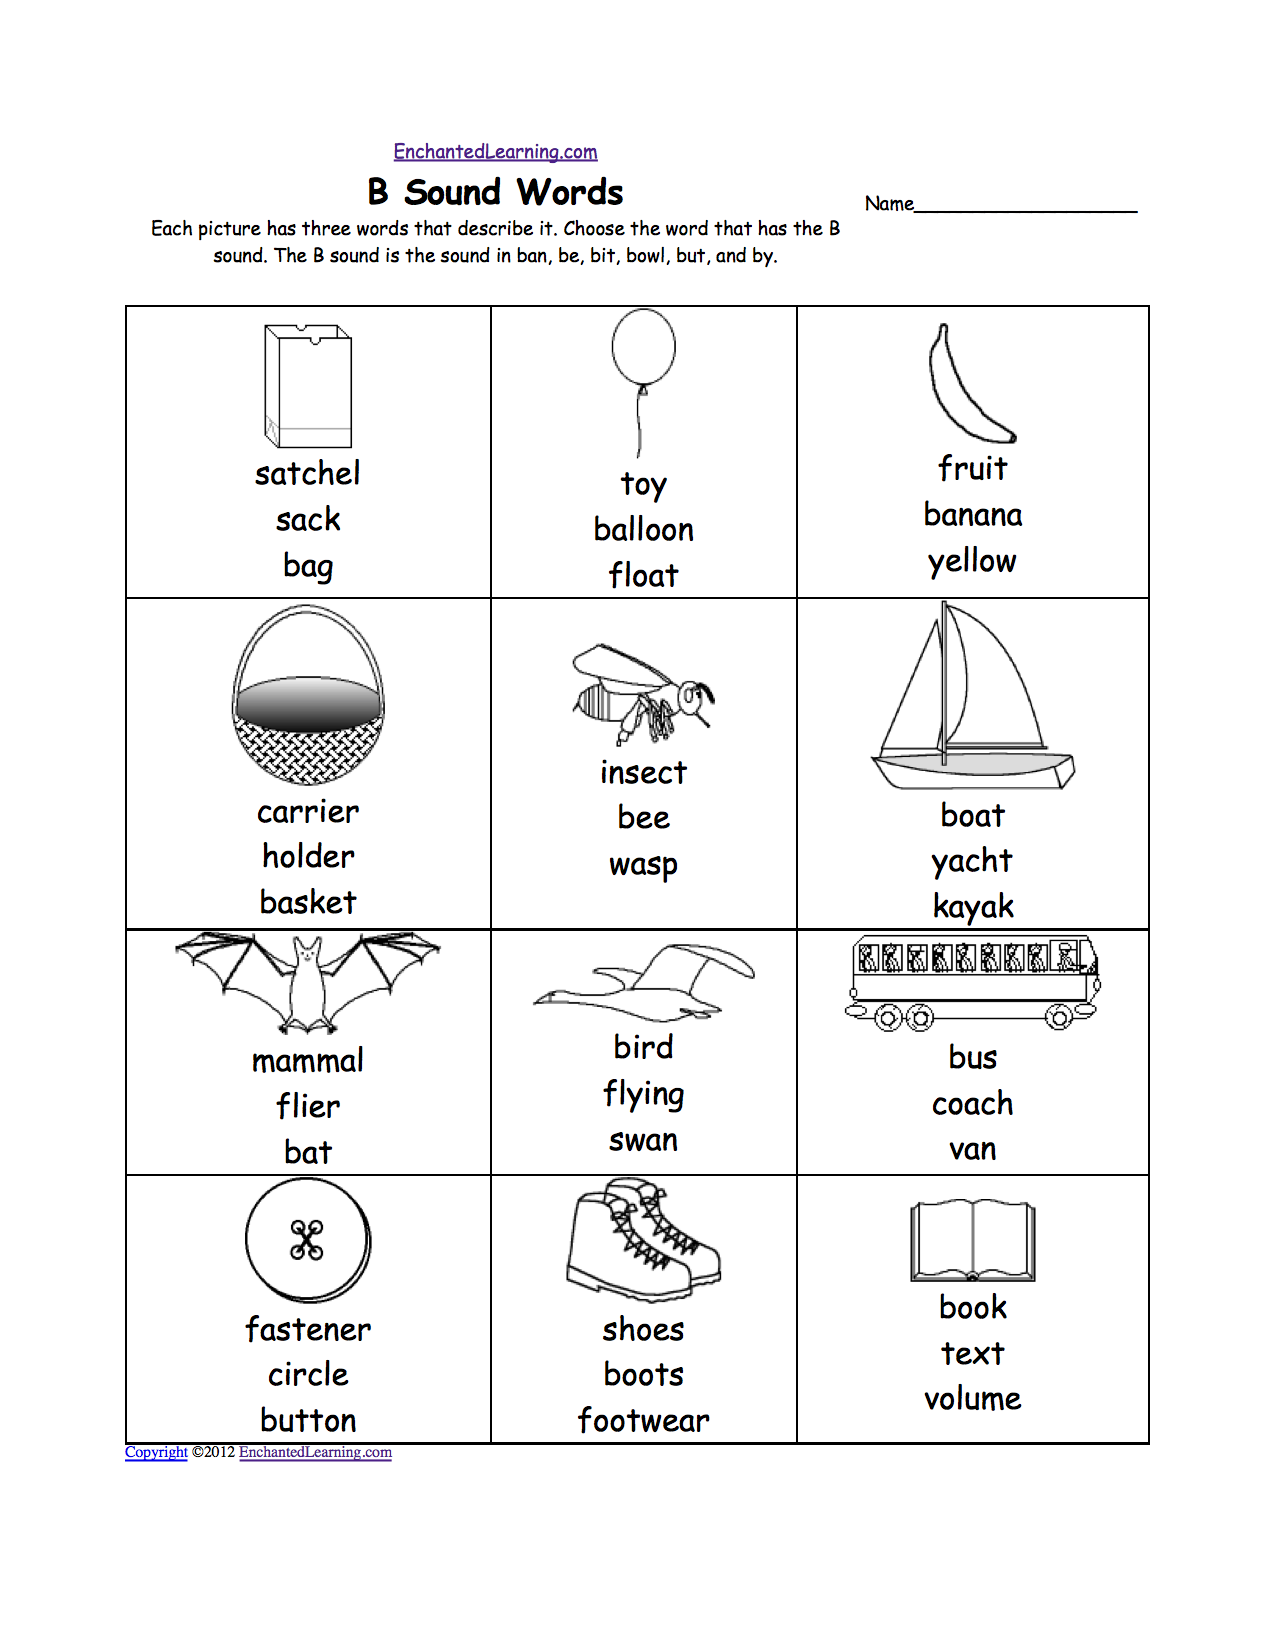 Aldiablosus  Pretty Phonics Worksheets Multiple Choice Worksheets To Print  With Likable Quotbquot Sound Phonics Worksheet Multiple Choice Each Picture Has Three Words That Describe It Choose The Word That Has A Quotbquot Sound The Quotbquot Sound Is The Sound  With Divine Adding And Subtracting Worksheets For St Grade Also Main Idea Printable Worksheets In Addition Prefix Worksheet Th Grade And Order Of Operations Worksheets Free As Well As Addition Of Fractions With Like Denominators Worksheets Additionally Simple And Compound Sentence Worksheet From Enchantedlearningcom With Aldiablosus  Likable Phonics Worksheets Multiple Choice Worksheets To Print  With Divine Quotbquot Sound Phonics Worksheet Multiple Choice Each Picture Has Three Words That Describe It Choose The Word That Has A Quotbquot Sound The Quotbquot Sound Is The Sound  And Pretty Adding And Subtracting Worksheets For St Grade Also Main Idea Printable Worksheets In Addition Prefix Worksheet Th Grade From Enchantedlearningcom